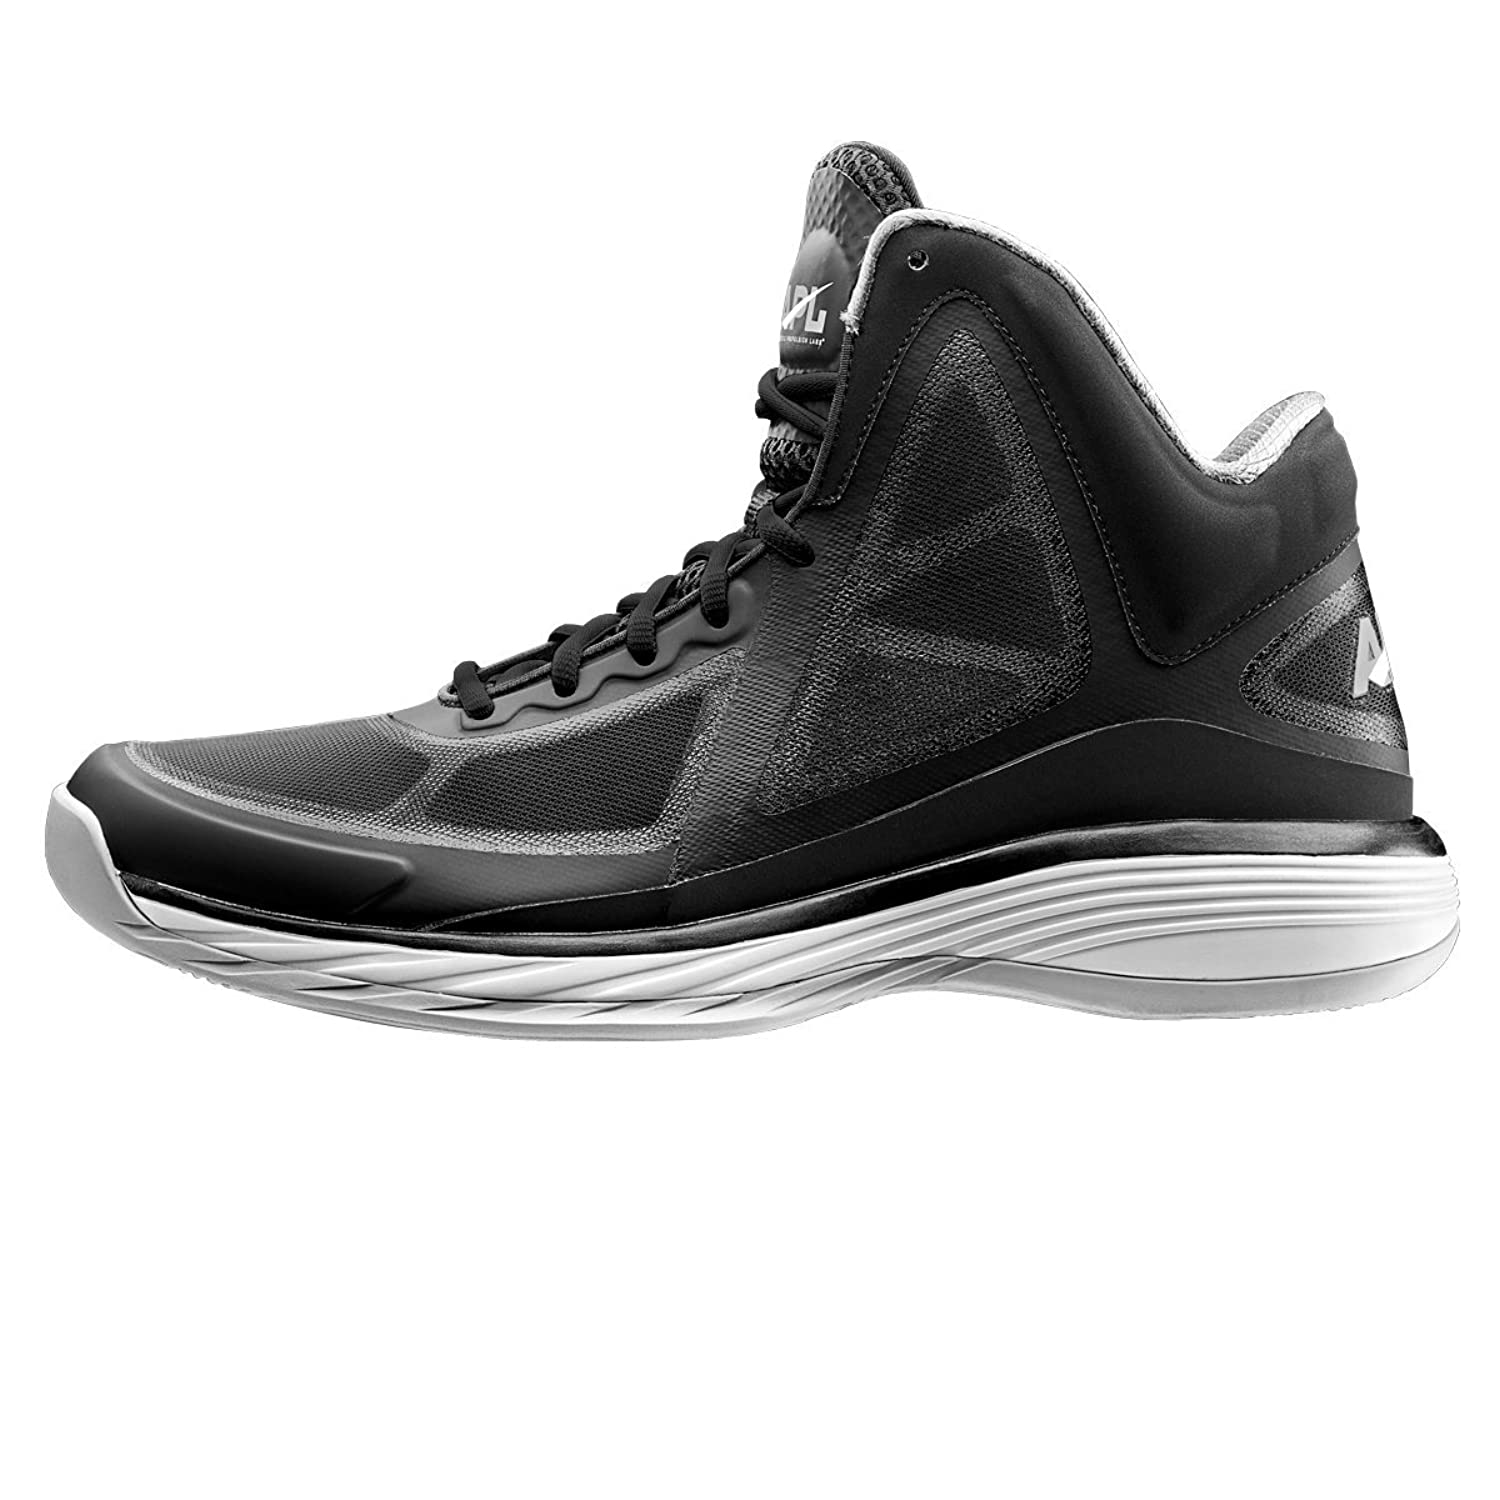 Apl Basketball Shoes Amazon